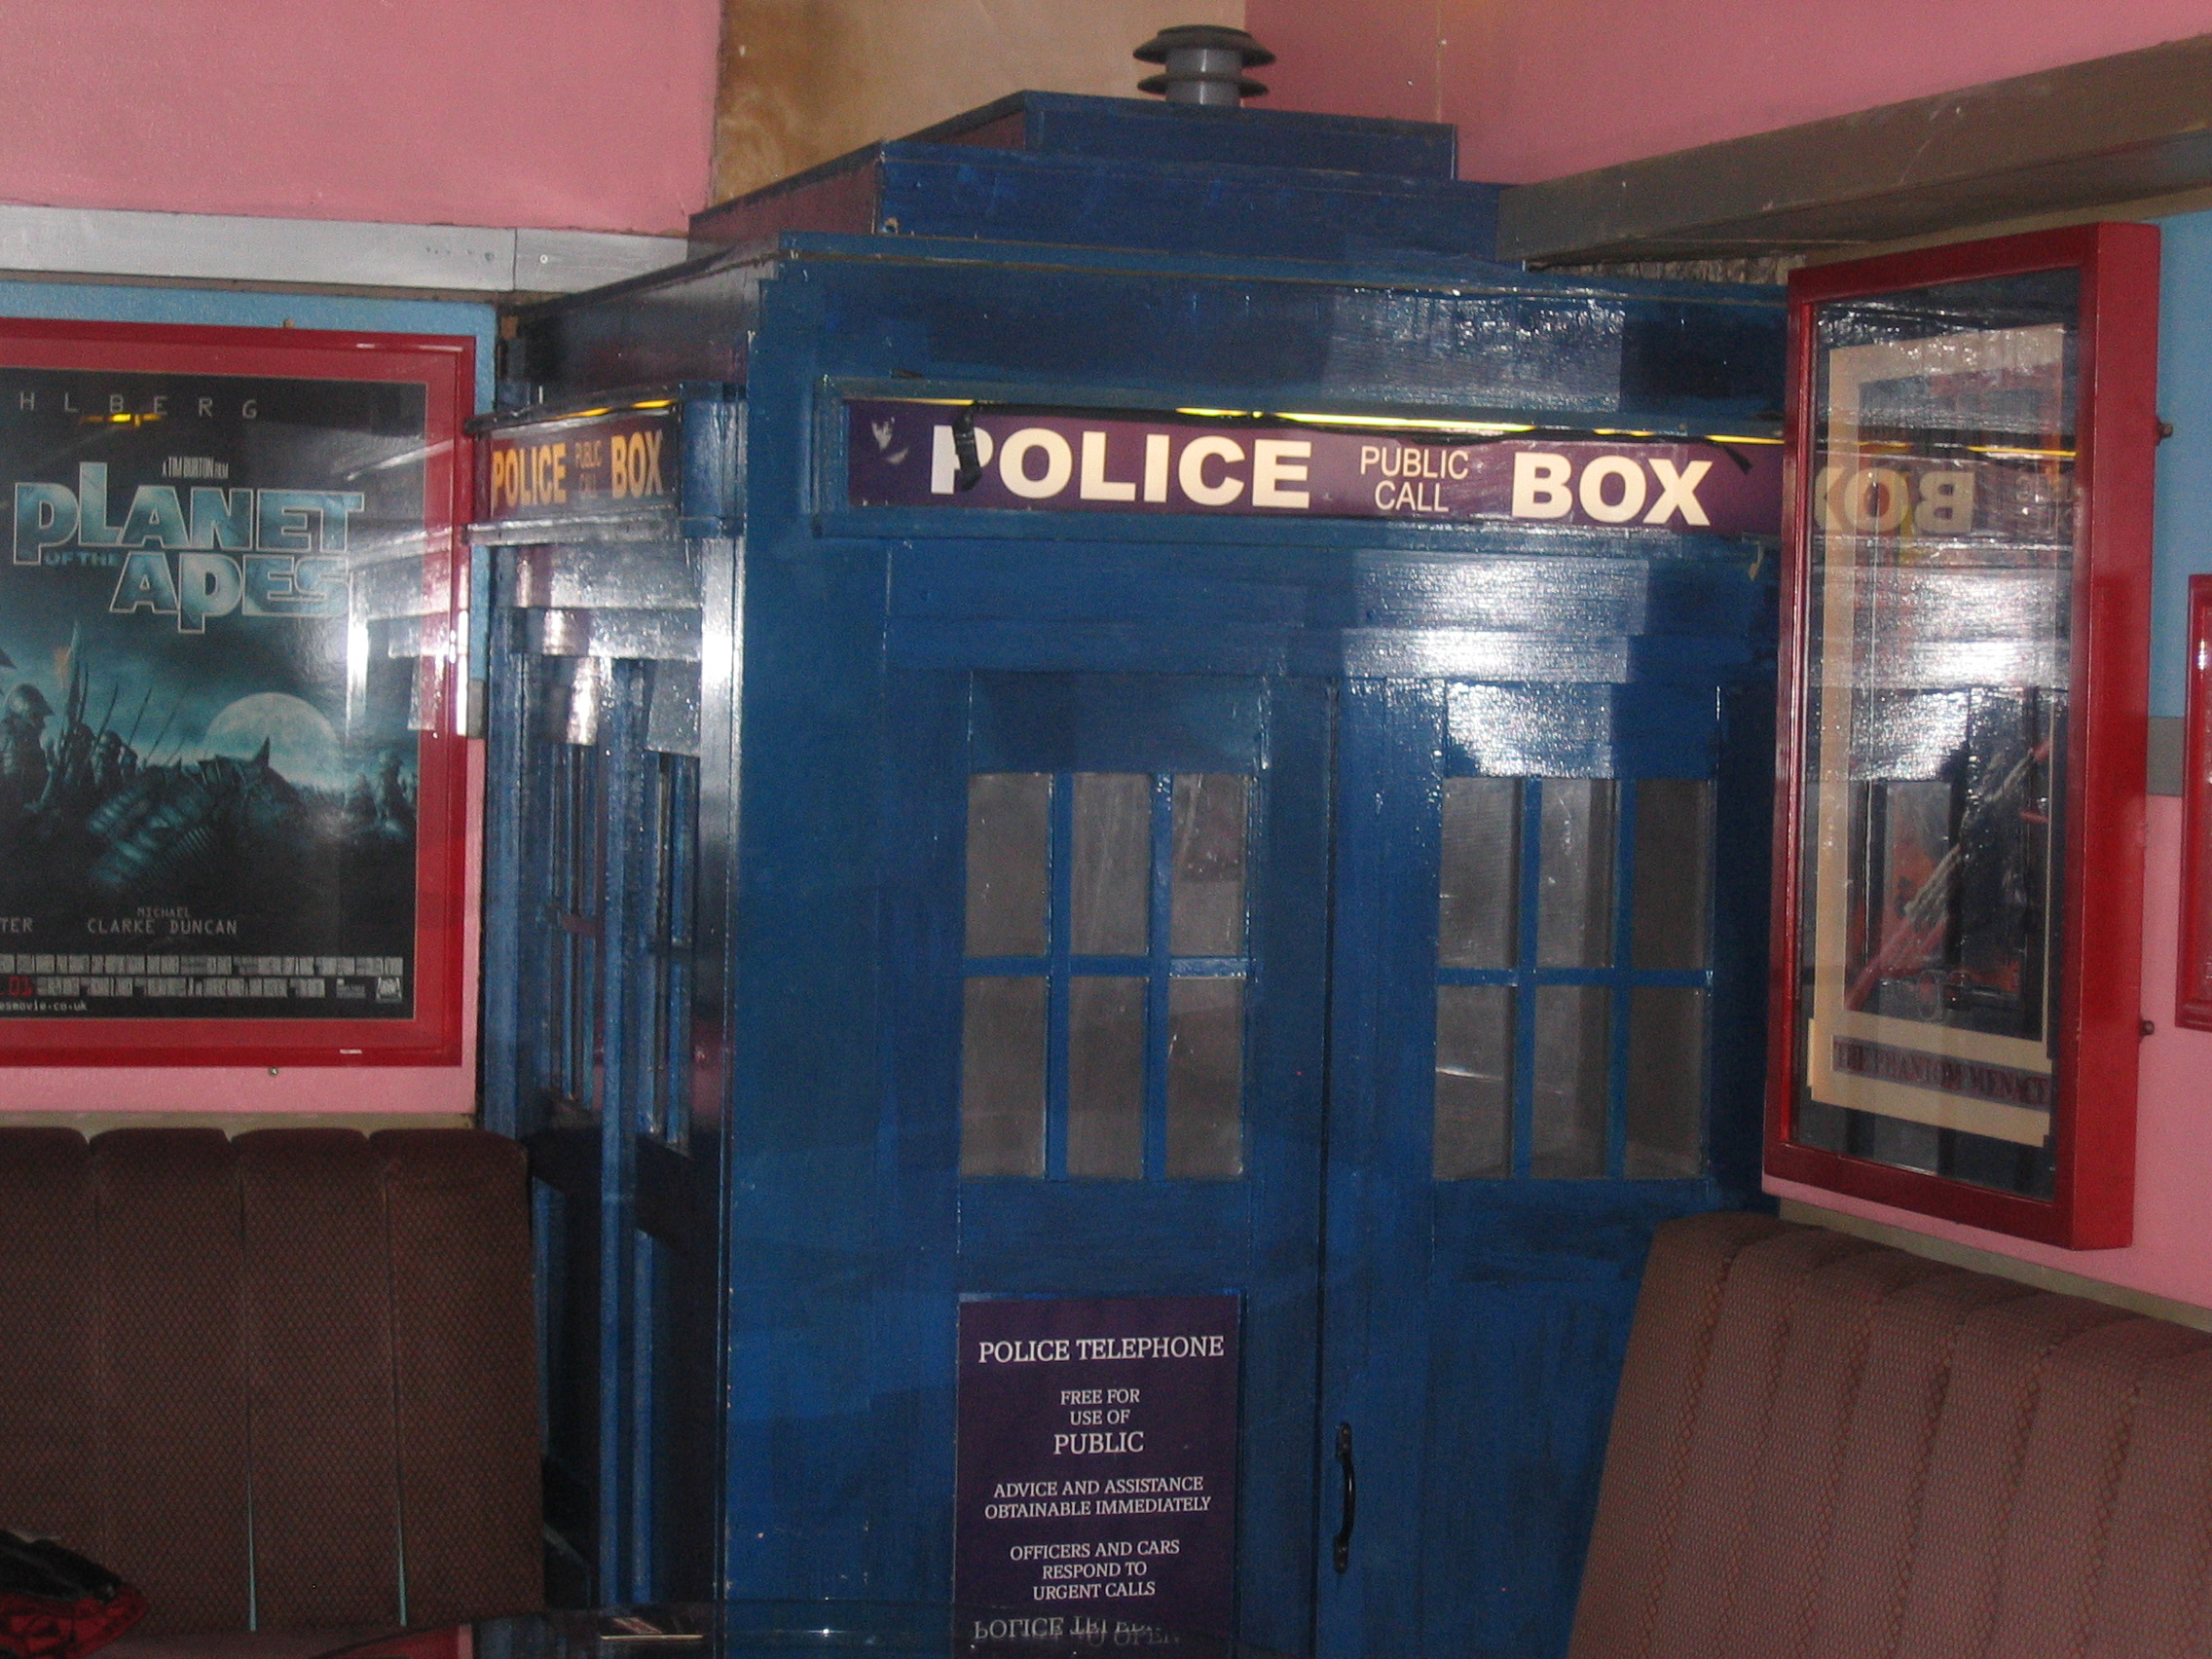 Photo taken by me – The Dr Who TARDIS in Manchester's FAB Café